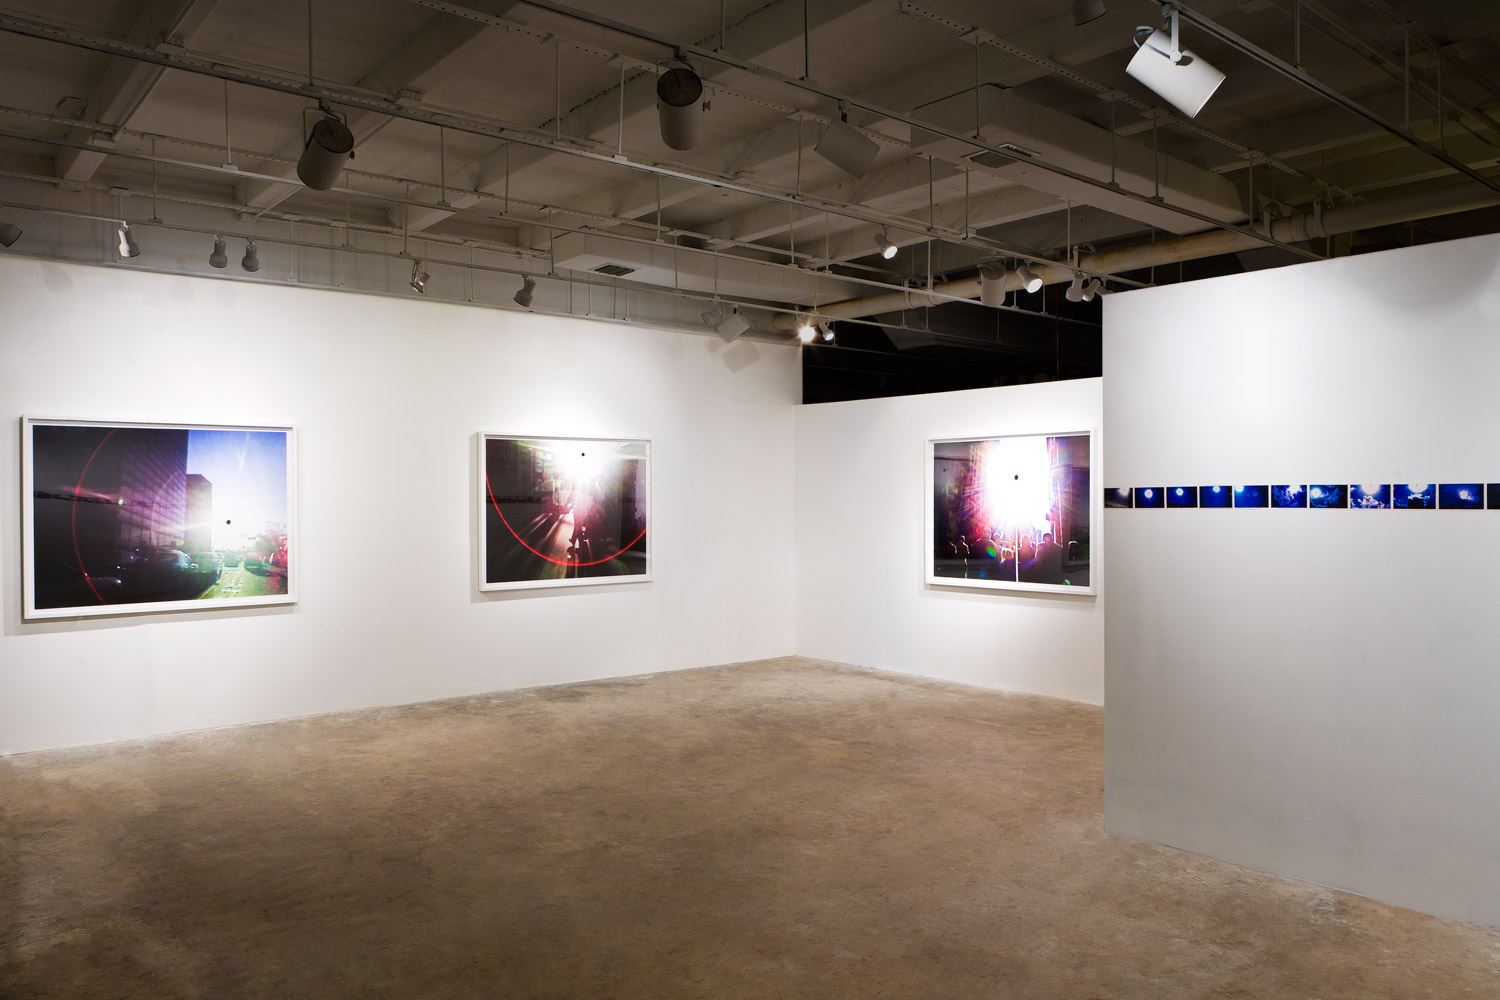 black sun project, gallery view, 2008 © harlan erskine